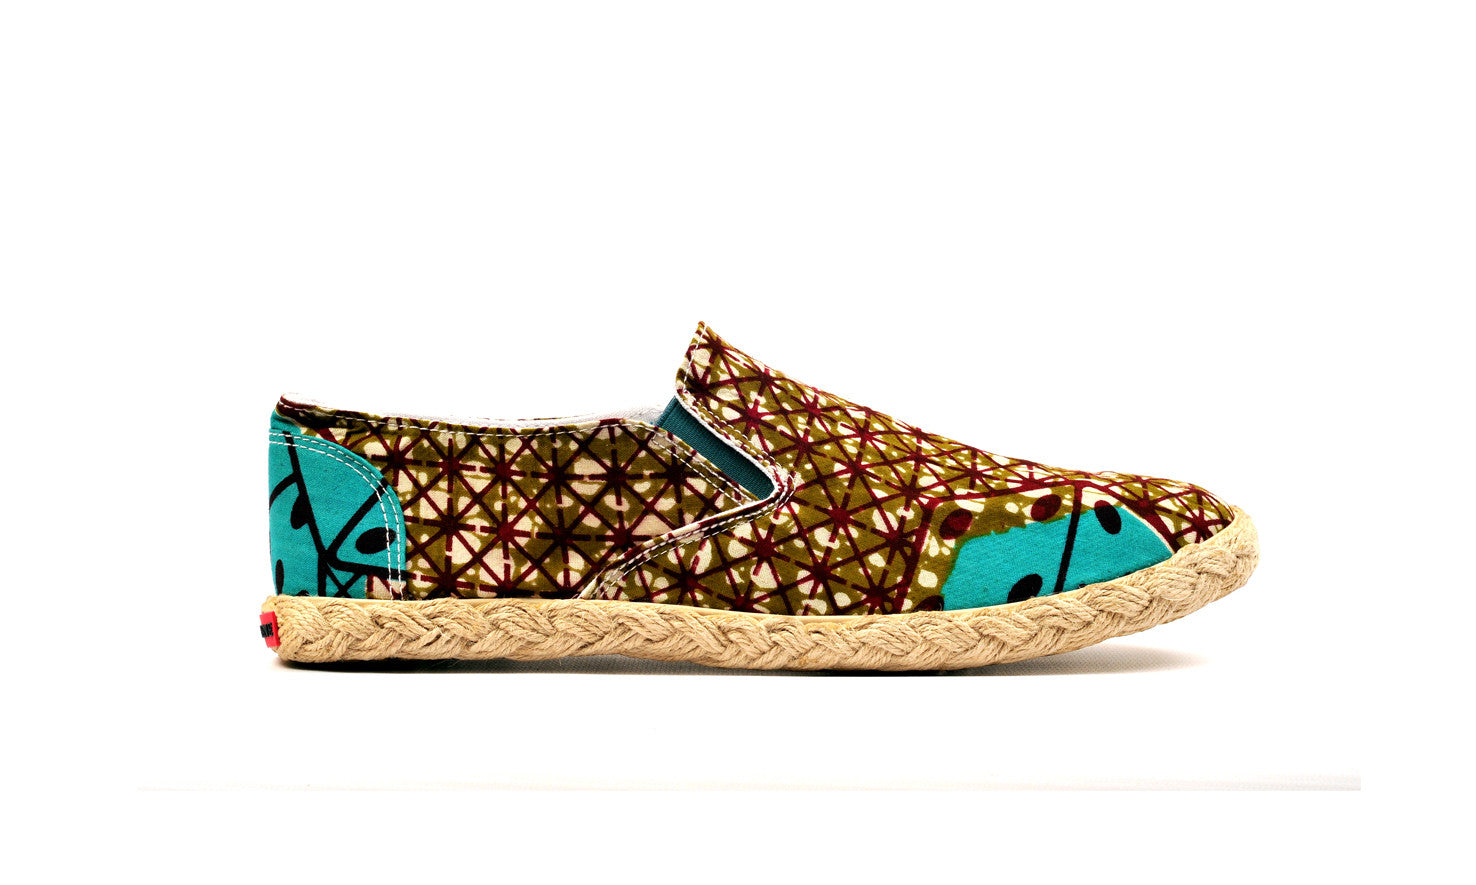 Printed Espadrille-Oh! Sam dice - OHEMA OHENE AFRICAN INSPIRED FASHION  - 1